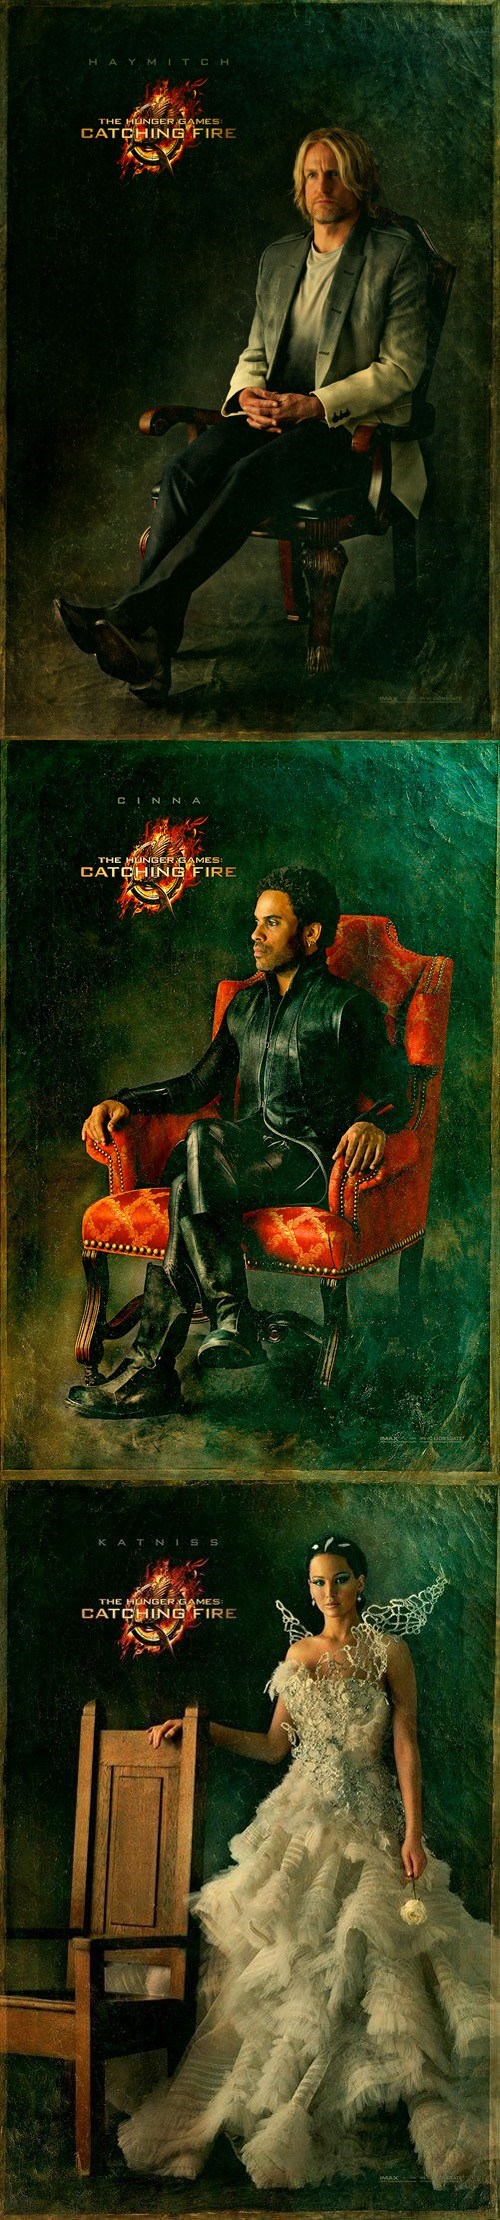 woody harrelson jennifer lawrence haymitch lenny kravitz portraits hunger games catching fire cinna katniss everdeen - 7116918016